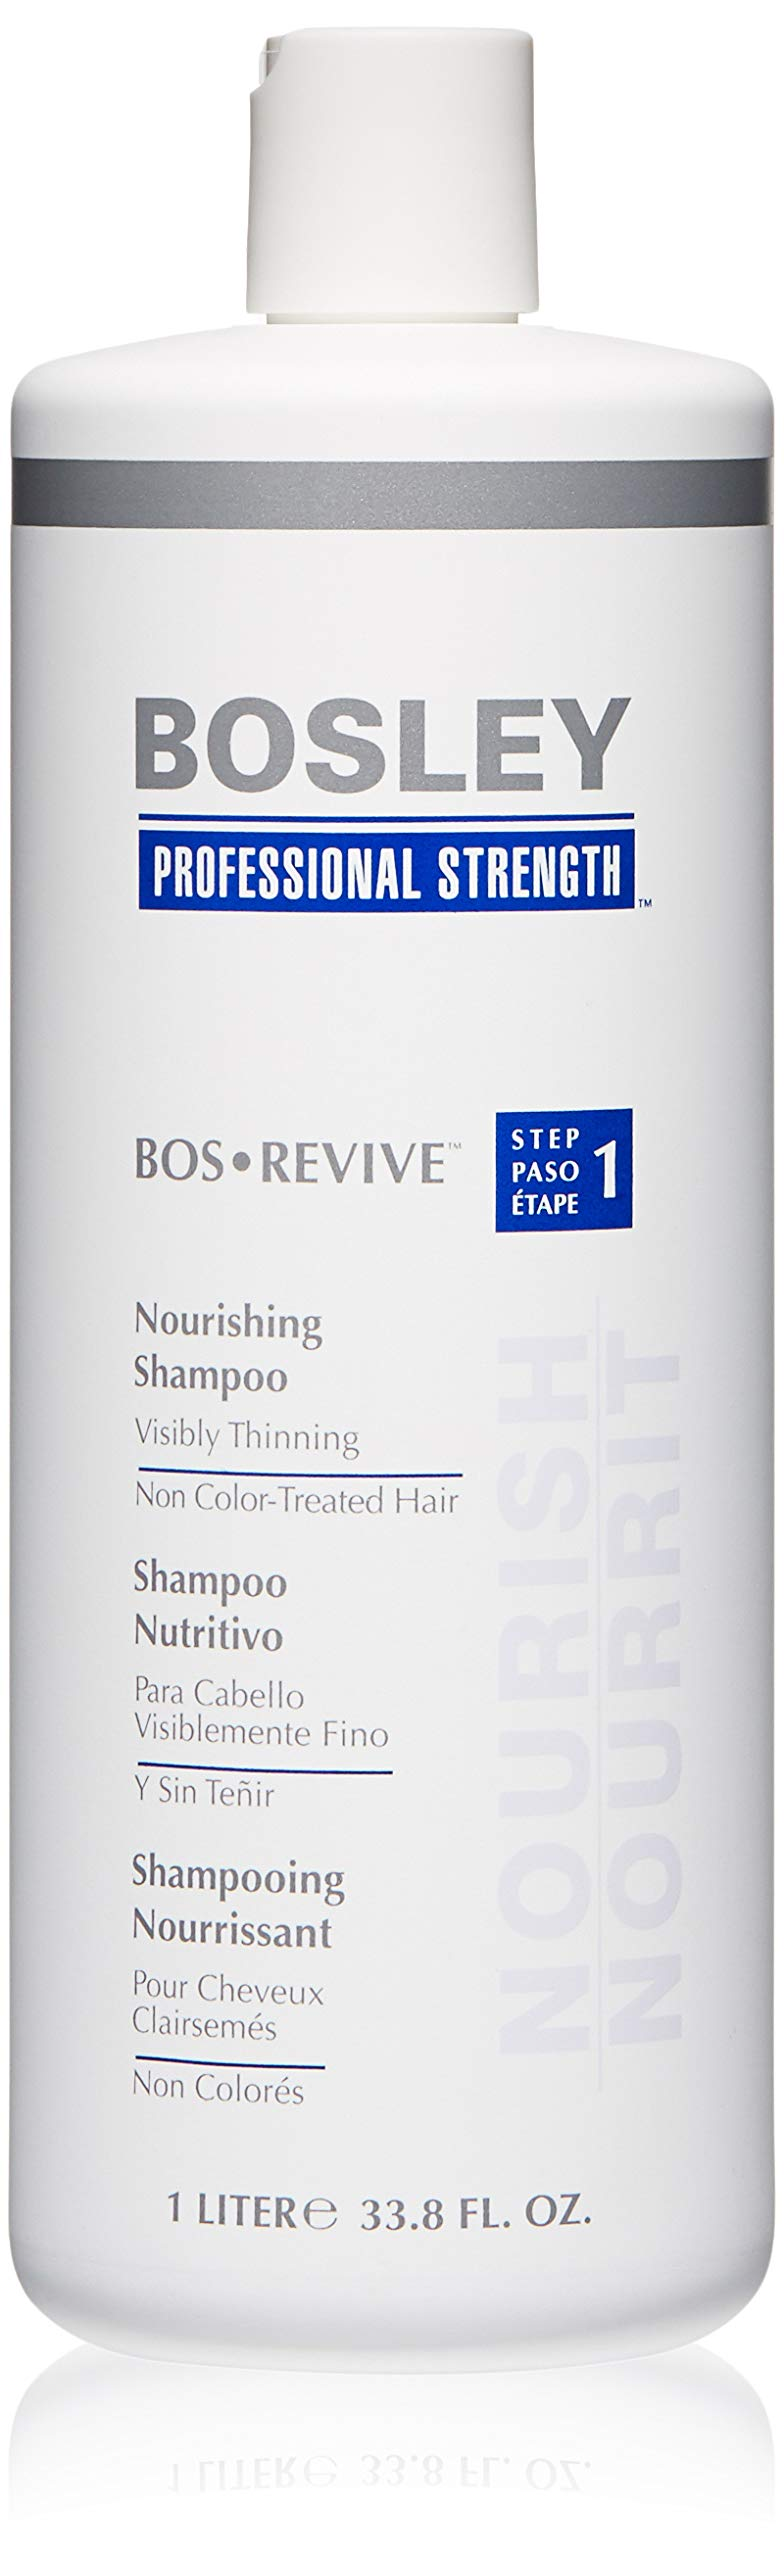 Bosley Bos Revive Nourishing Shampoo for Visibly Thinning Non Color-Treated Hair, 33.8 Ounce by Bosley Professional Strength